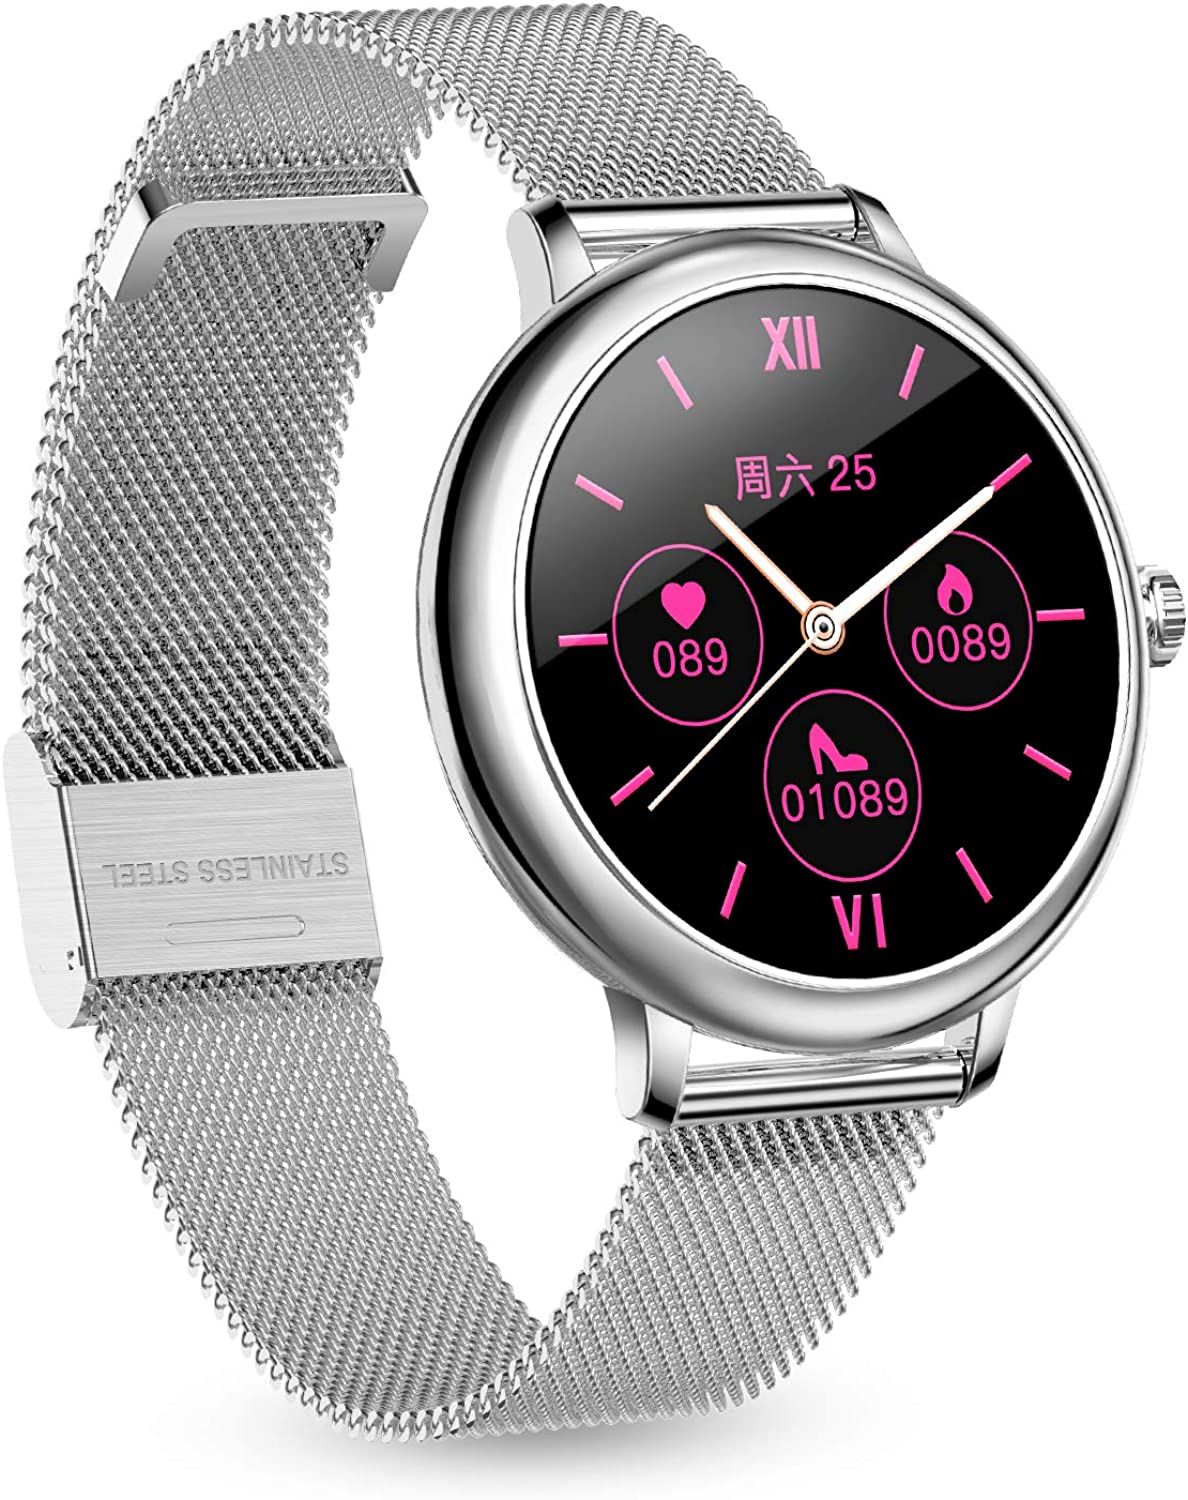 LB LIEBIG Womens Smart Watch, Fitness Activity Tracker Watch with Heart Rate,Blood Pressure Monitor, Full Touch Screen, Extra Leather Band,Compatible with Apple and Android Phones